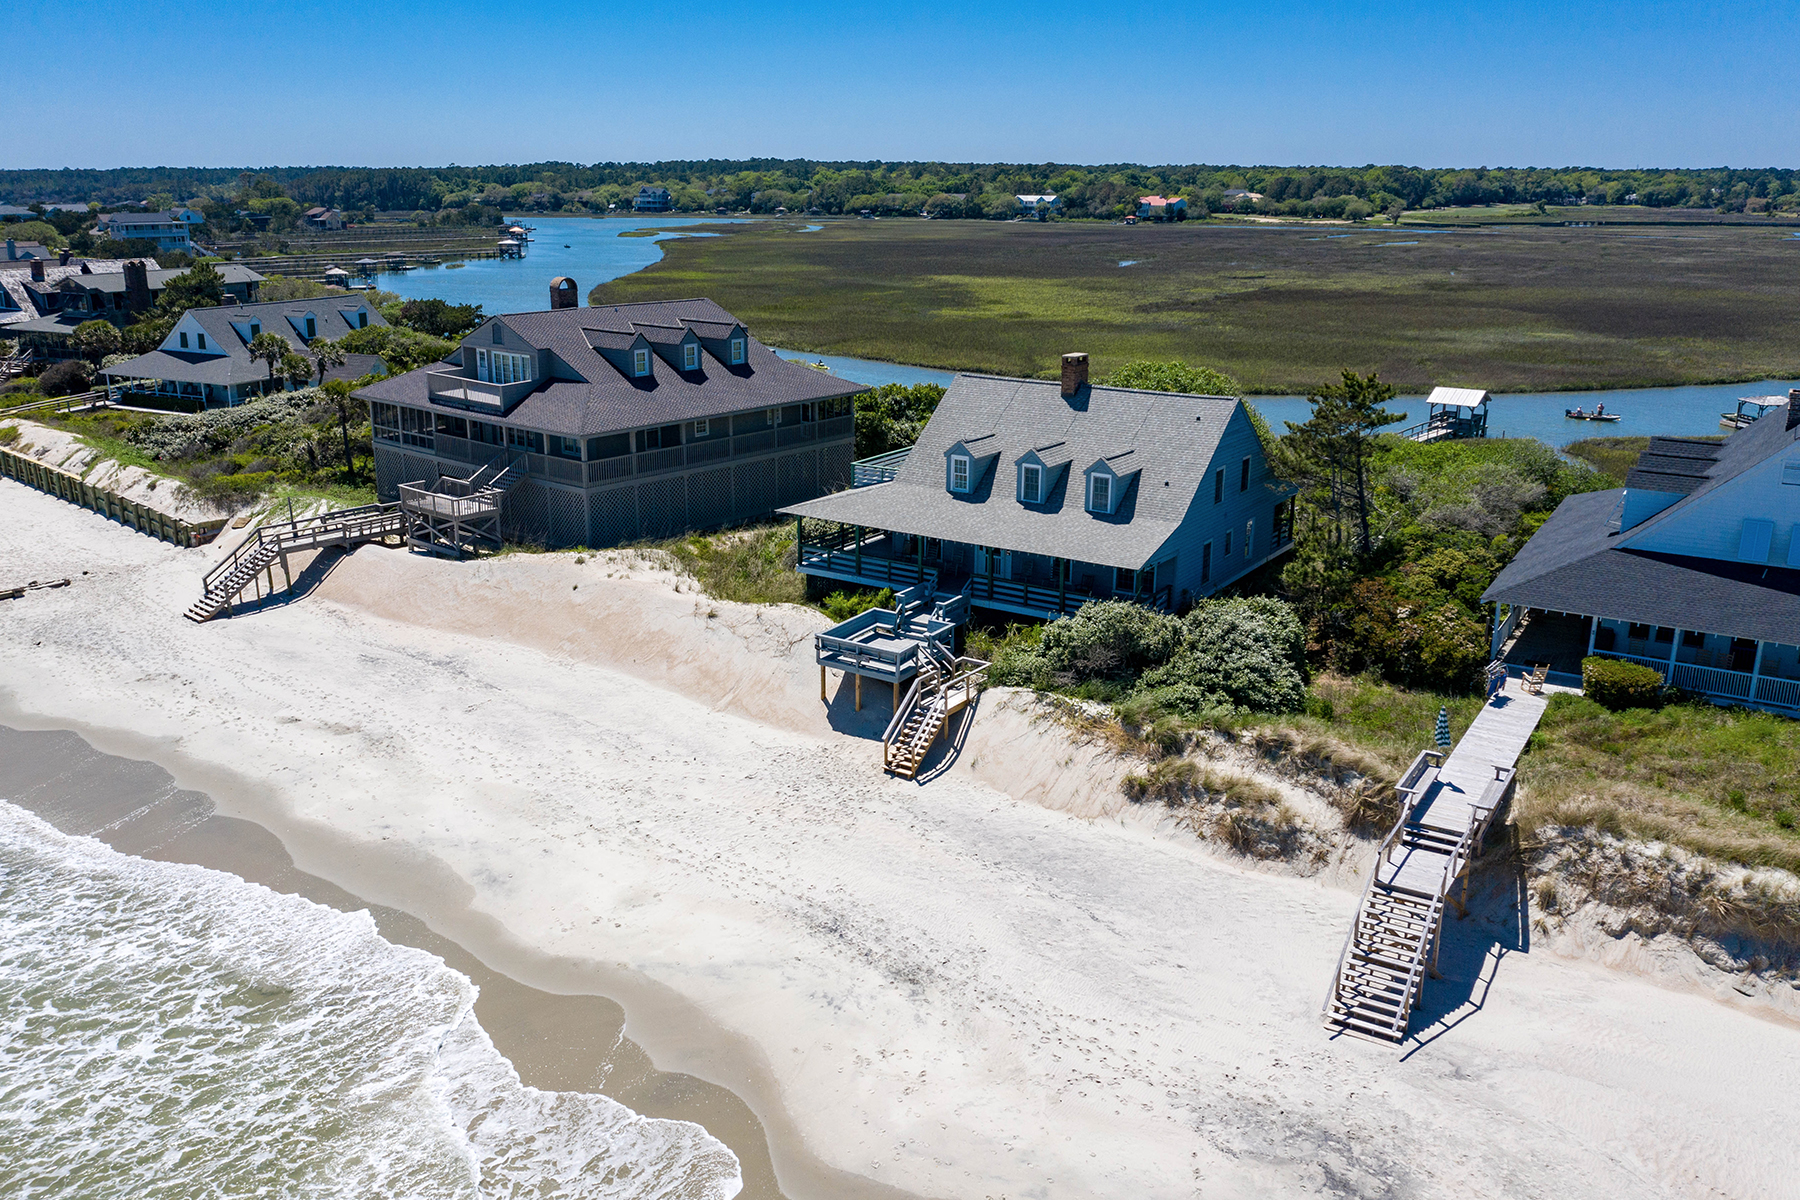 Single Family Homes for Sale at 554 Myrtle Avenue Pawleys Island, South Carolina 29585 United States